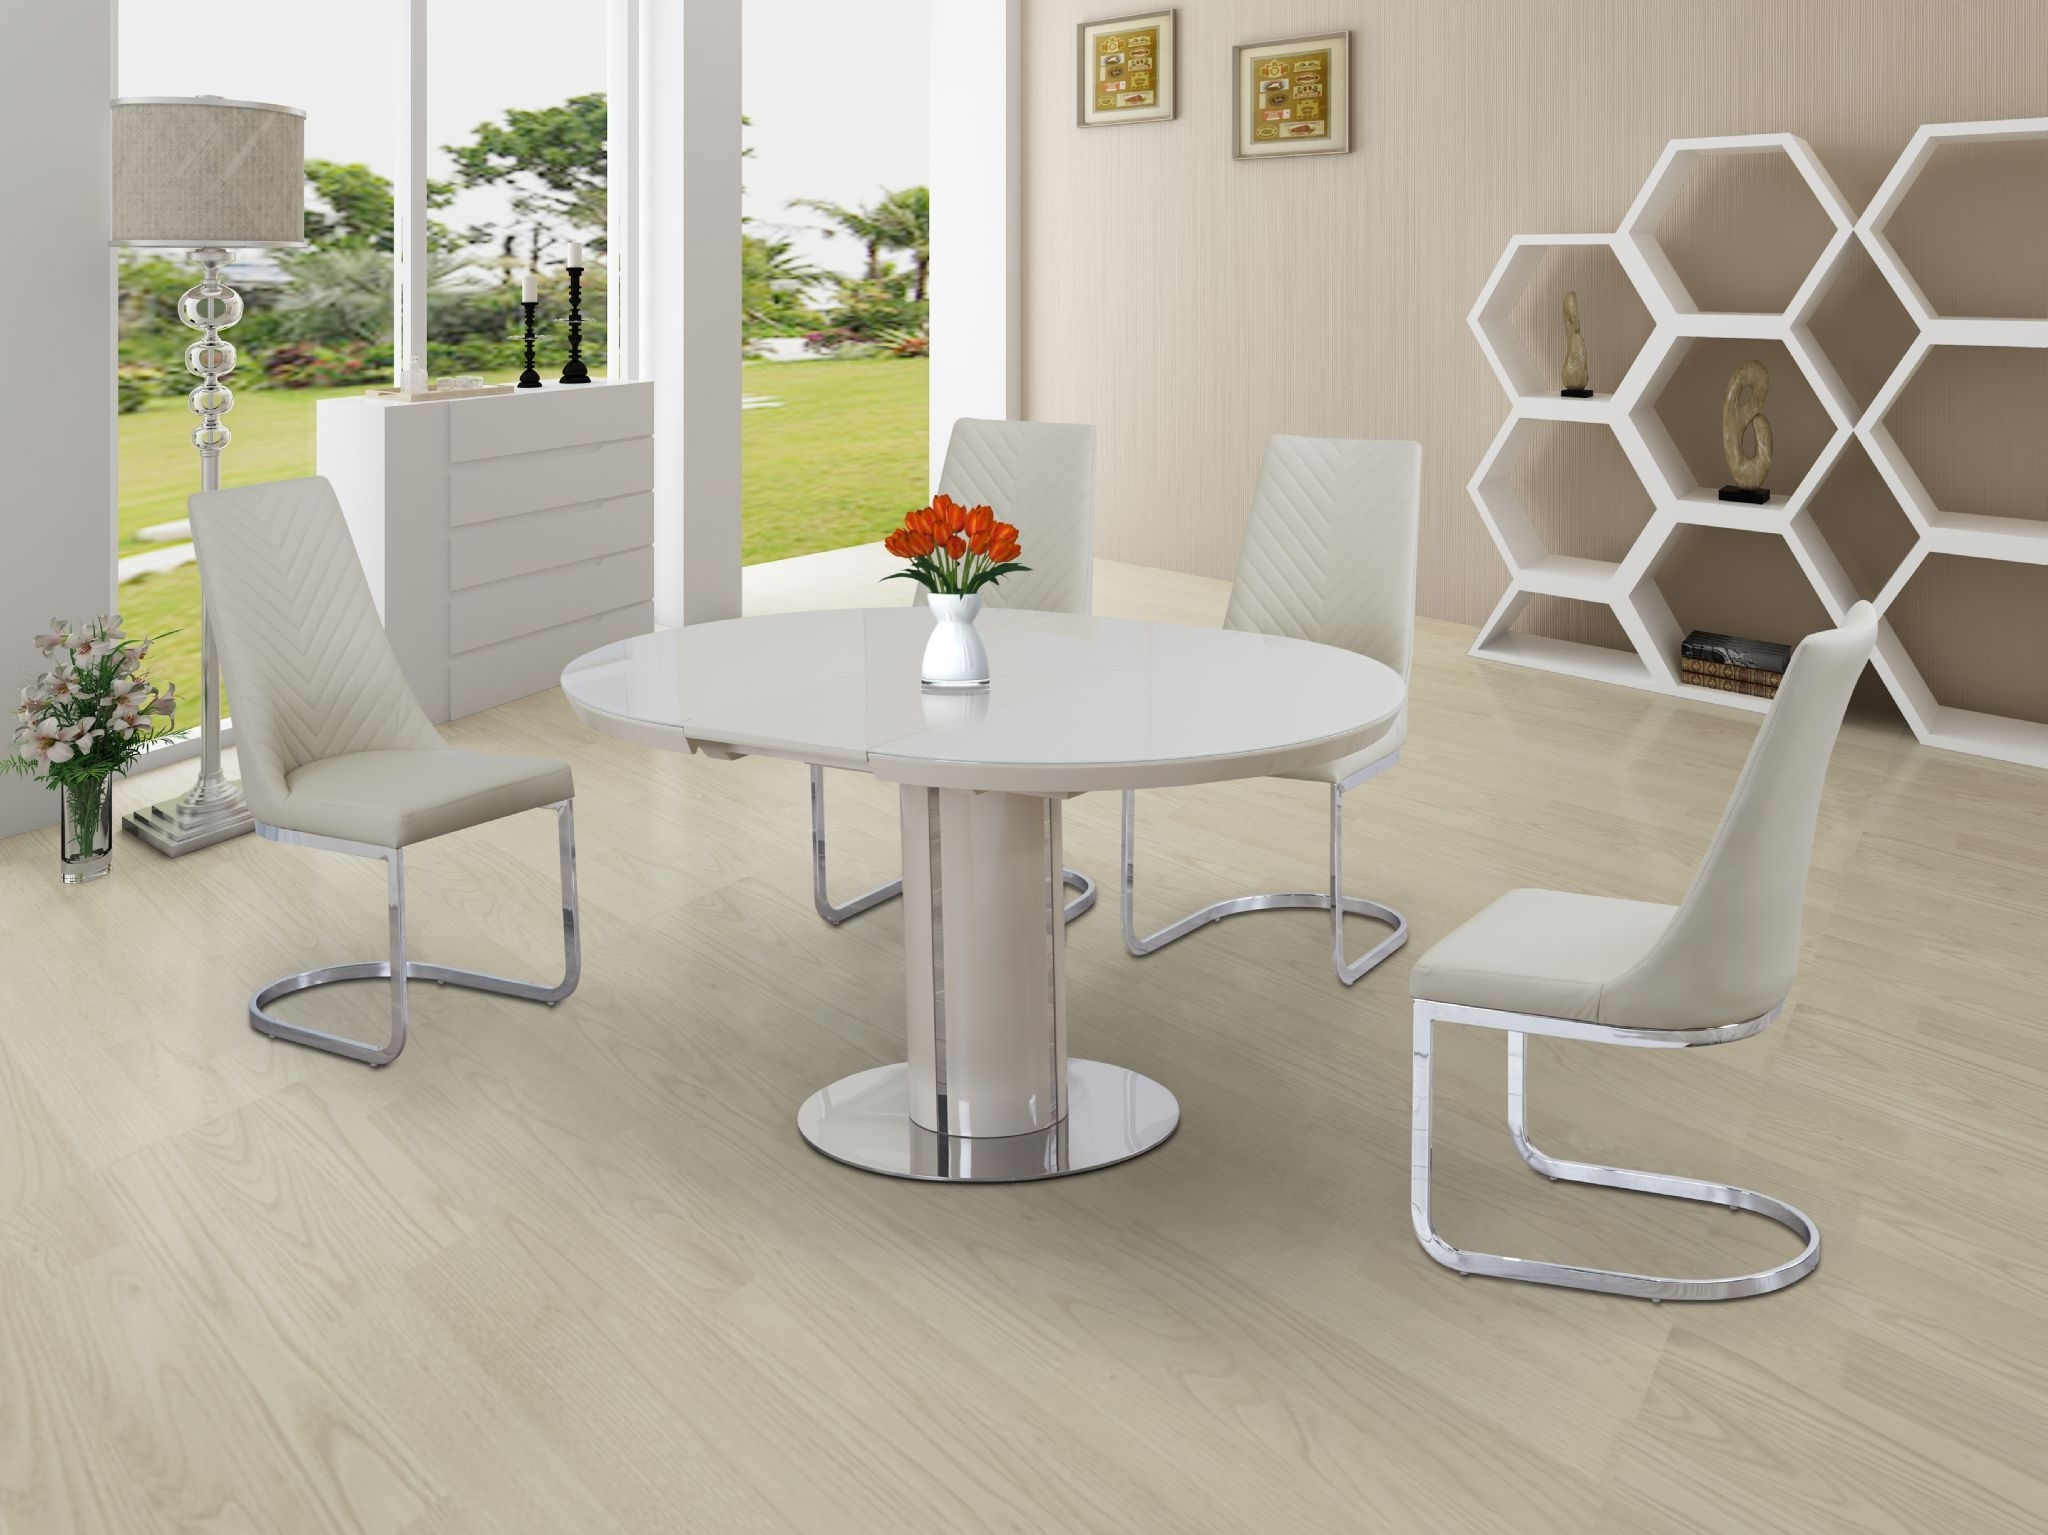 Eclipse Round / Oval Gloss & Glass Extending 110 To 145 Cm Dining Table –  Cream For Favorite Oval Extending Dining Tables And Chairs (View 6 of 25)